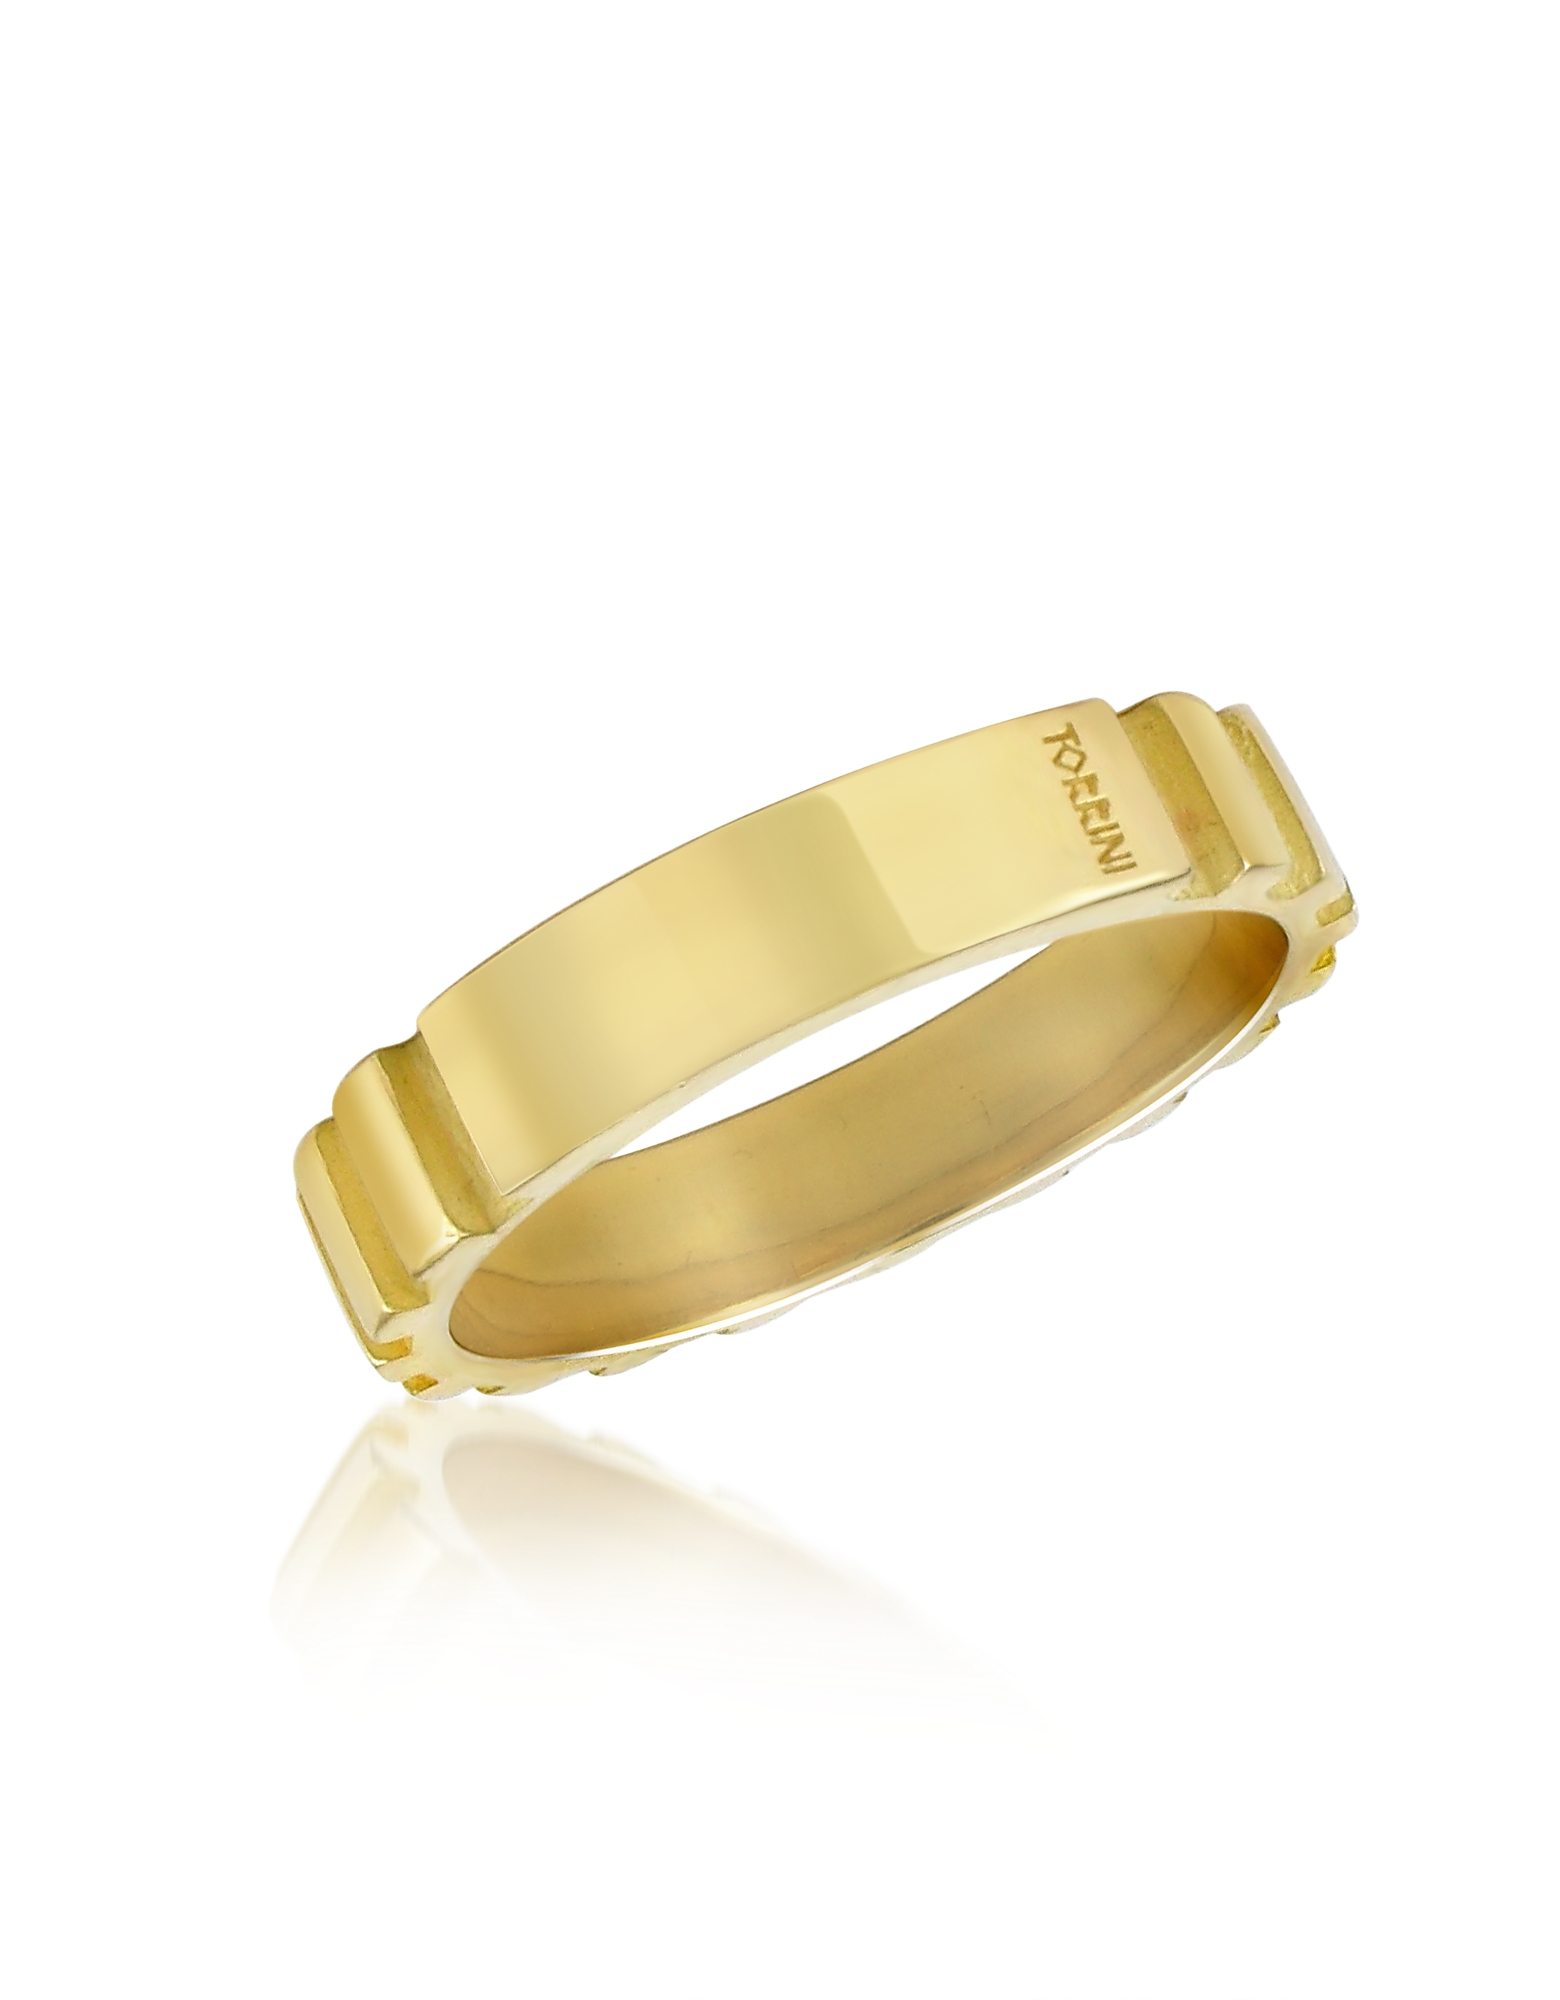 Stripes - 18k Yellow Gold Band Ring